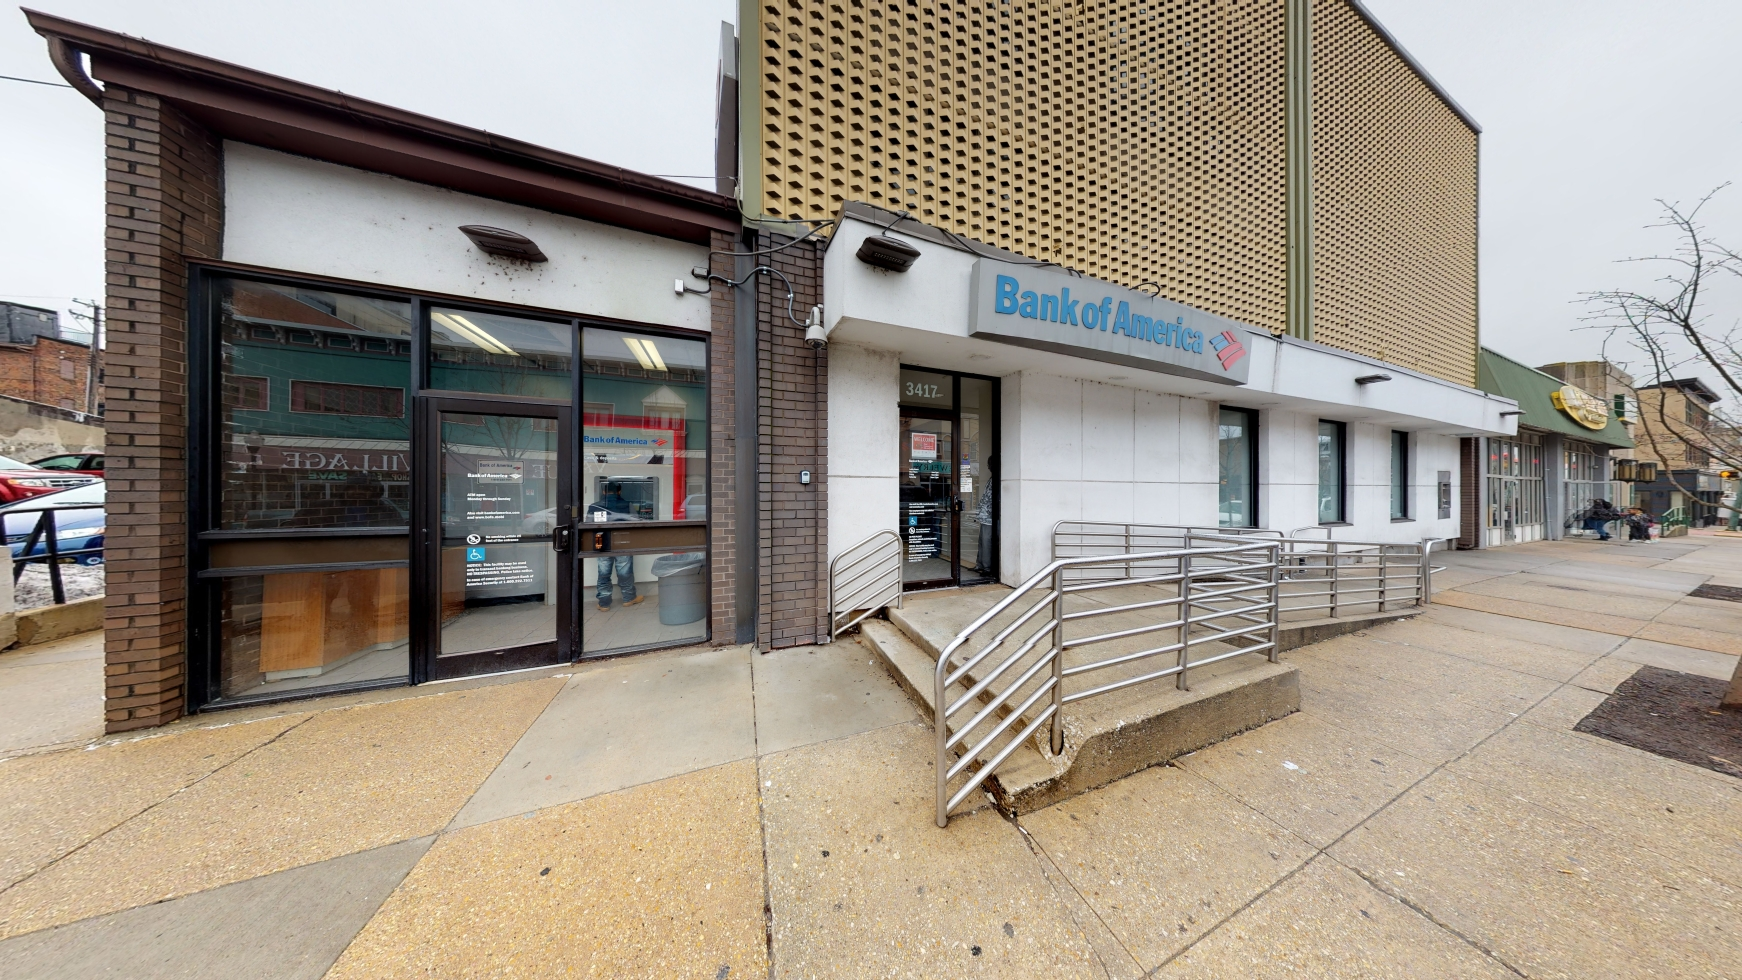 Bank of America financial center with walk-up ATM | 3415 Eastern Ave, Baltimore, MD 21224